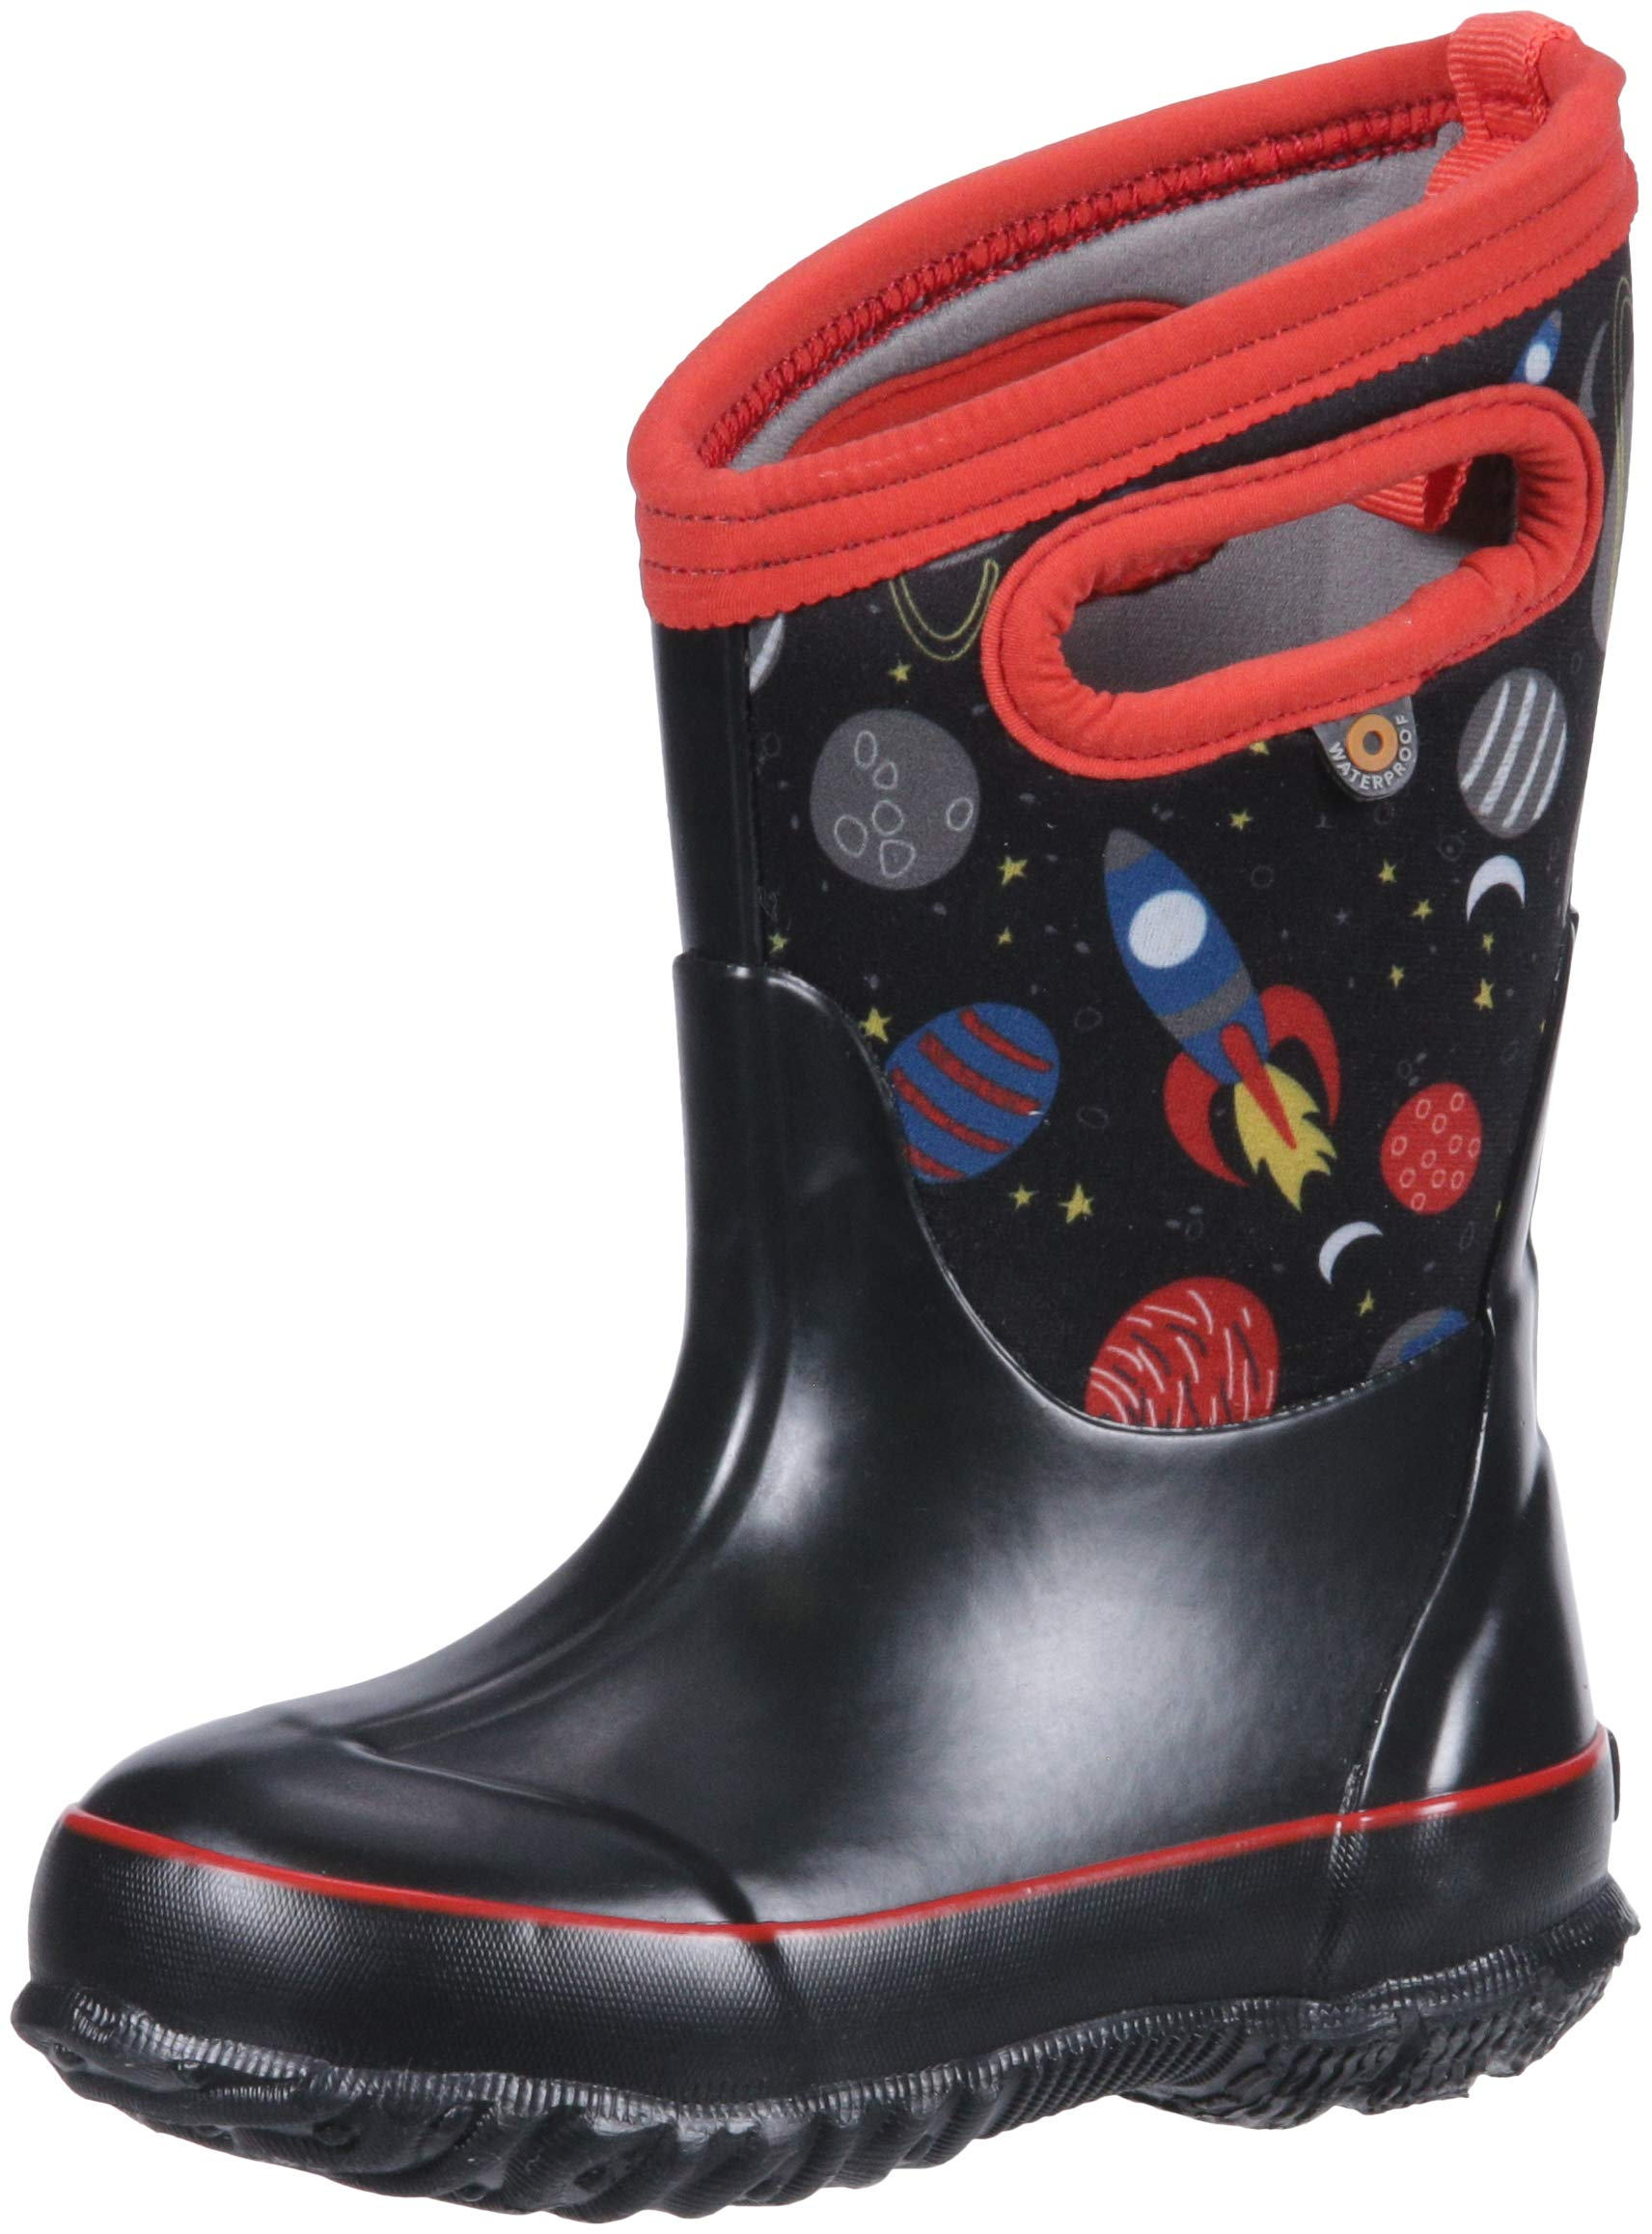 Bogs Classic High Waterproof Insulated Rubber Neoprene Rain Boot Snow, Space Black/Multi 12 M US Little Kid